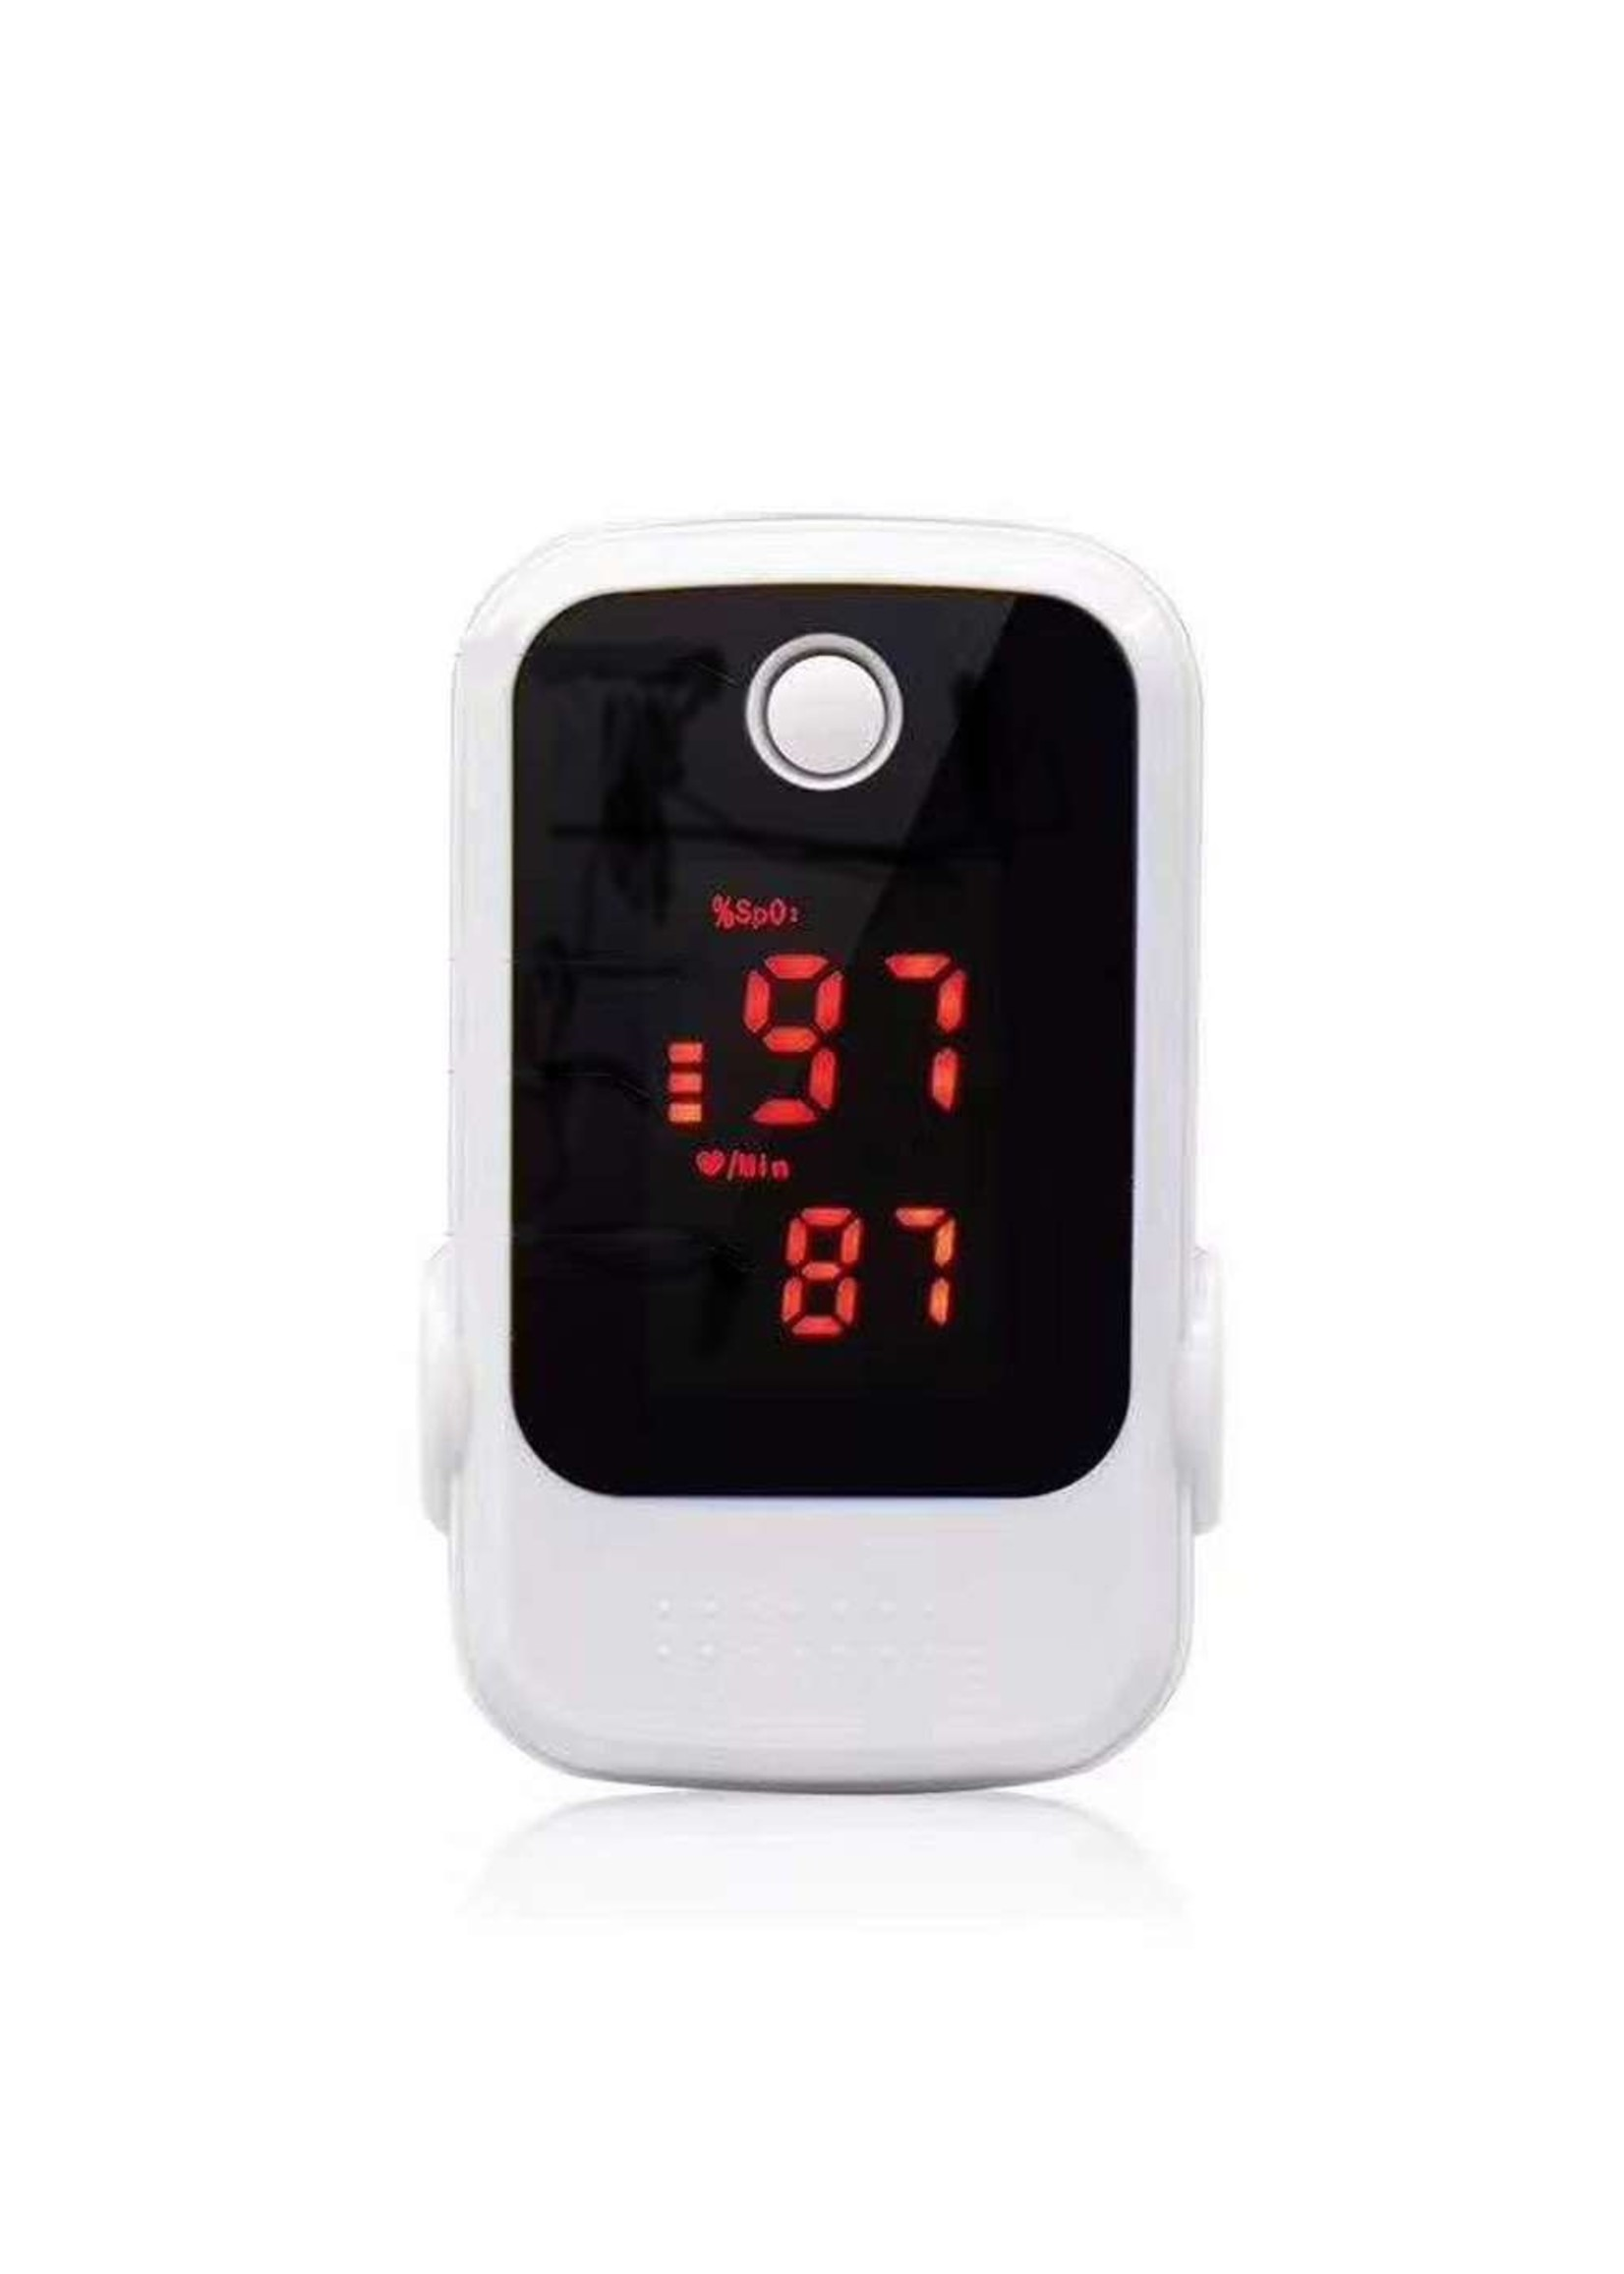 665 Leather 665 Pulse Oximeter